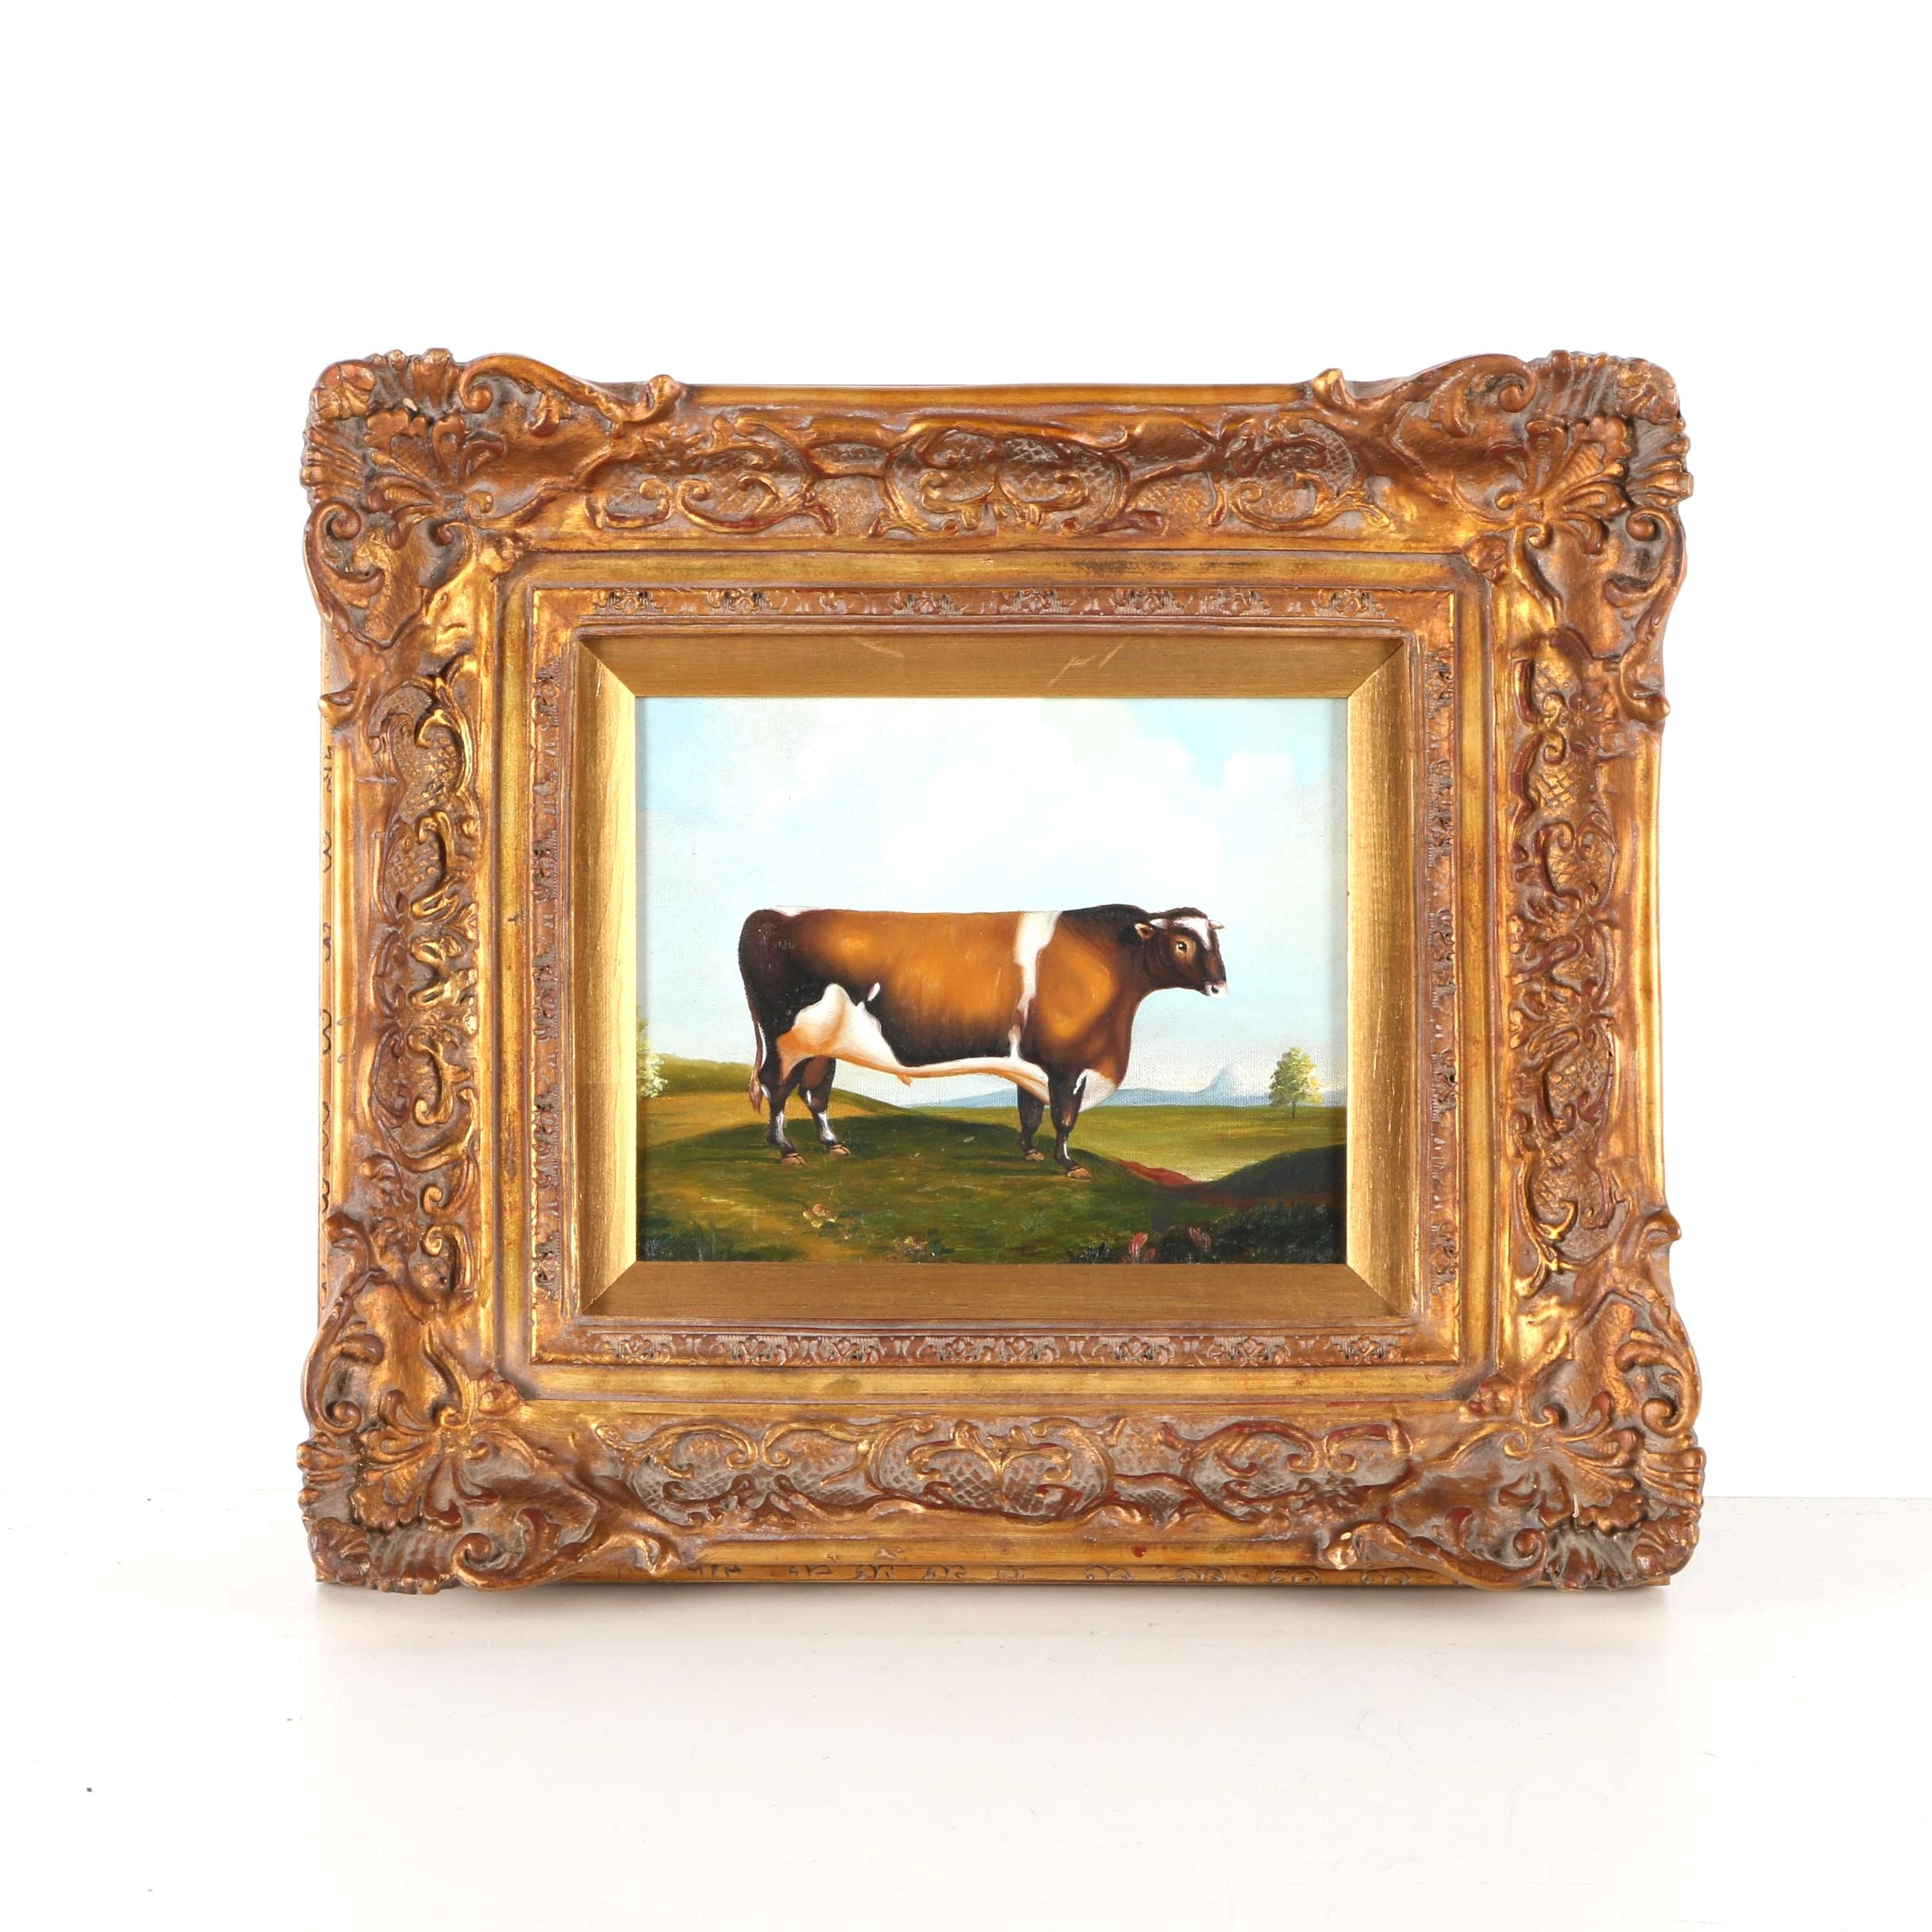 Oil on Canvas Painting of Cow in the Style of Van Webber